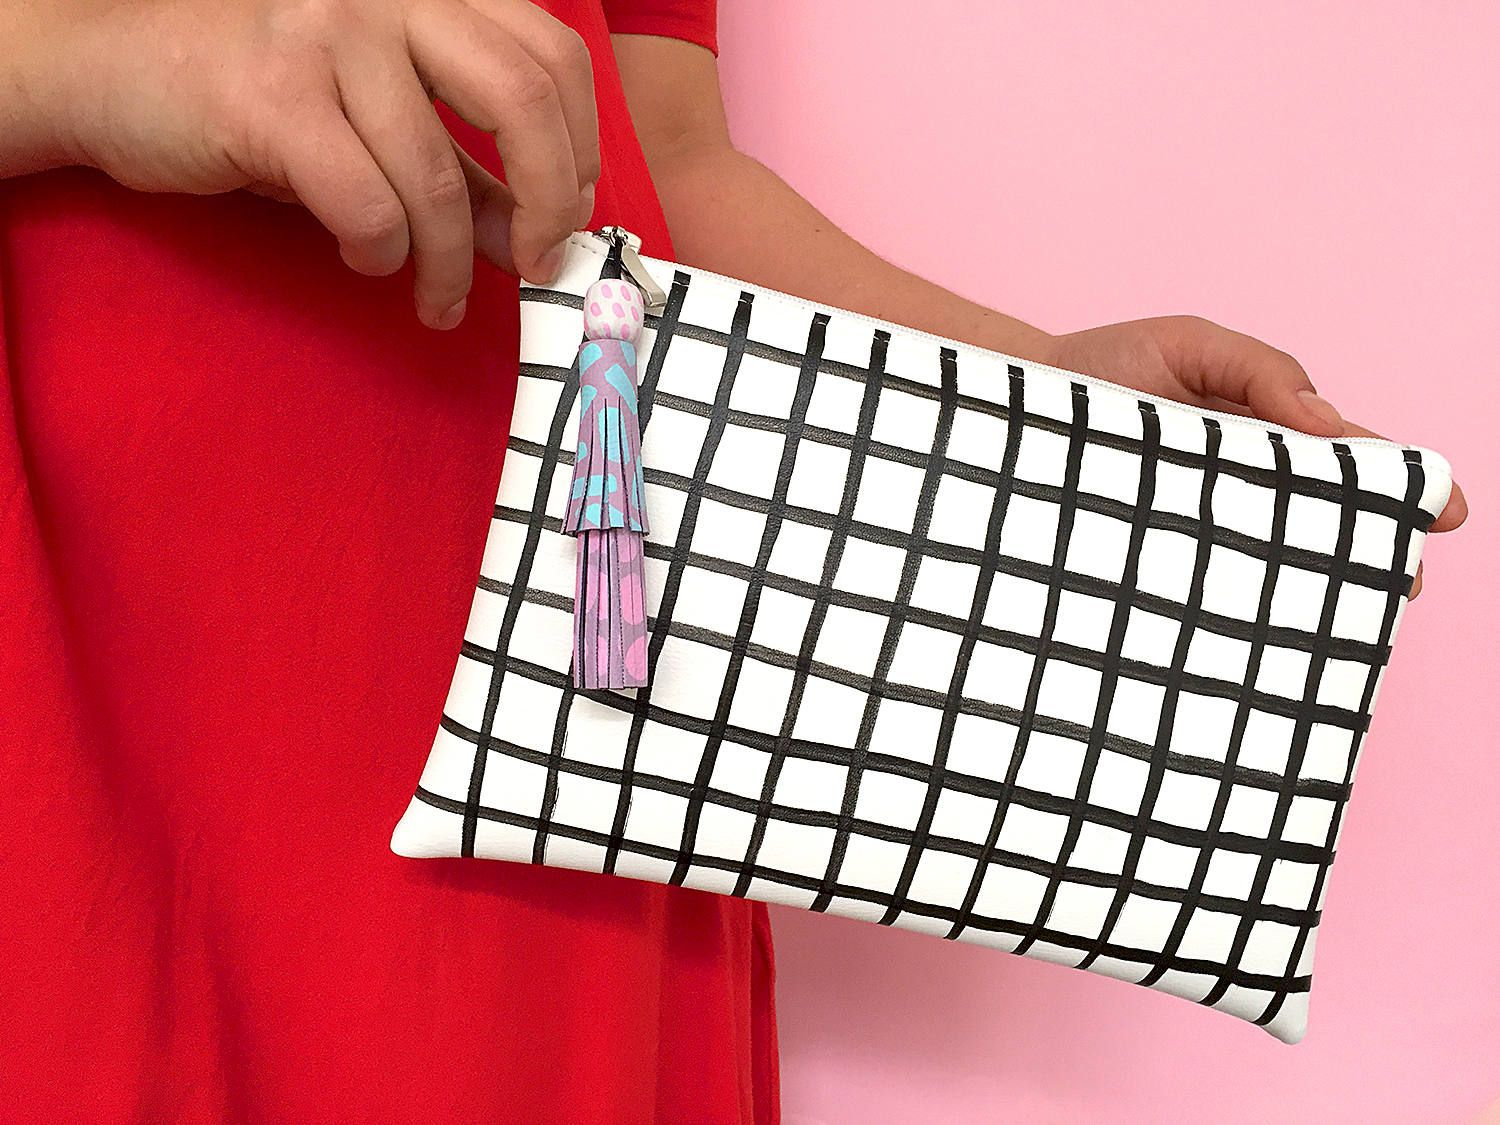 Black and white grid tassel clutch, checkered purse, colorful tassel clutch, zipper clutch, hand painted graphic purse, minimalistic clutch by ColorPhobe on Etsy